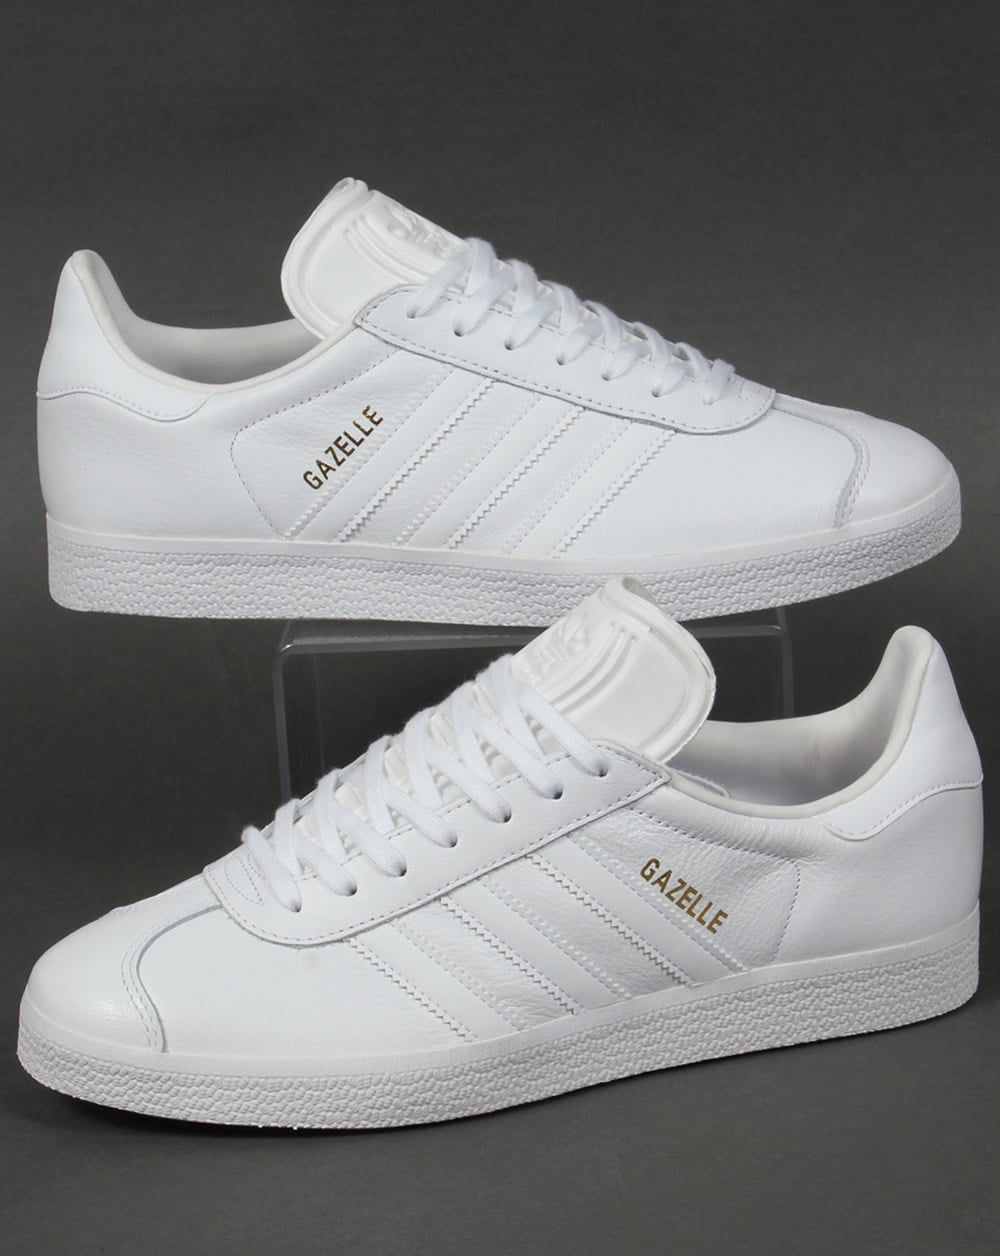 adidas gazelle mens white leather